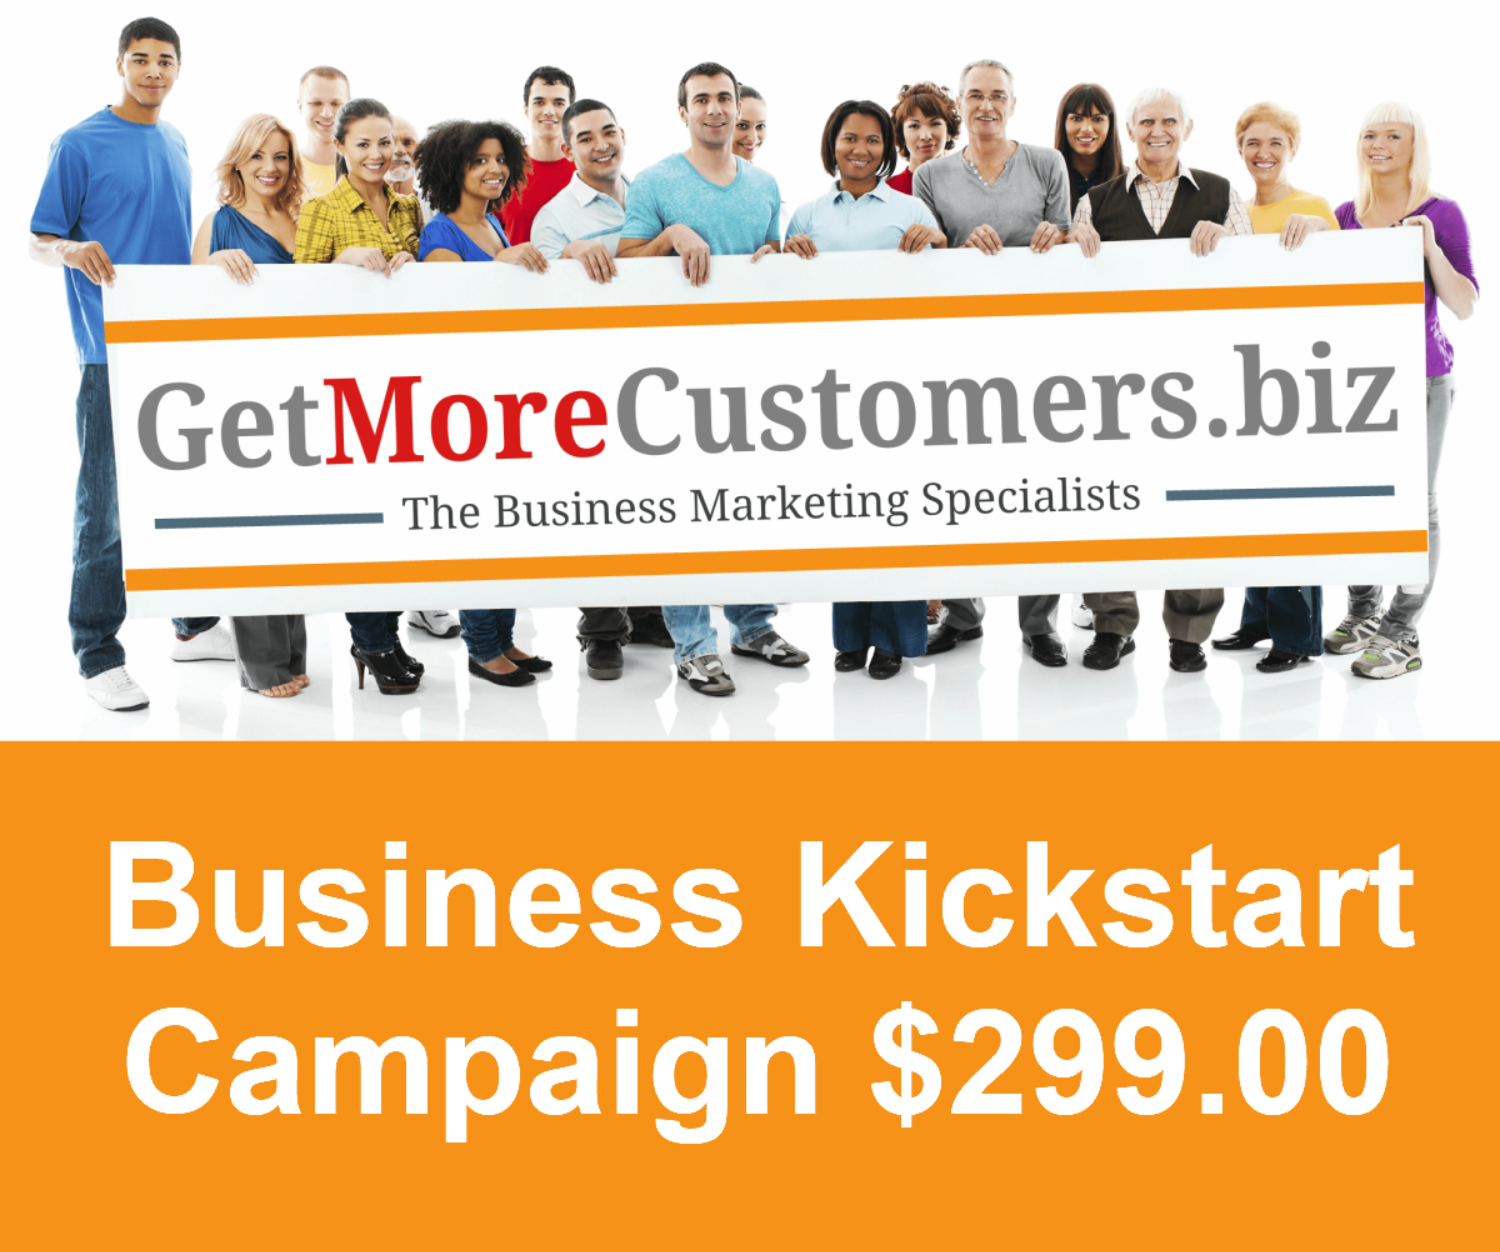 The Kickstart Campaign Package